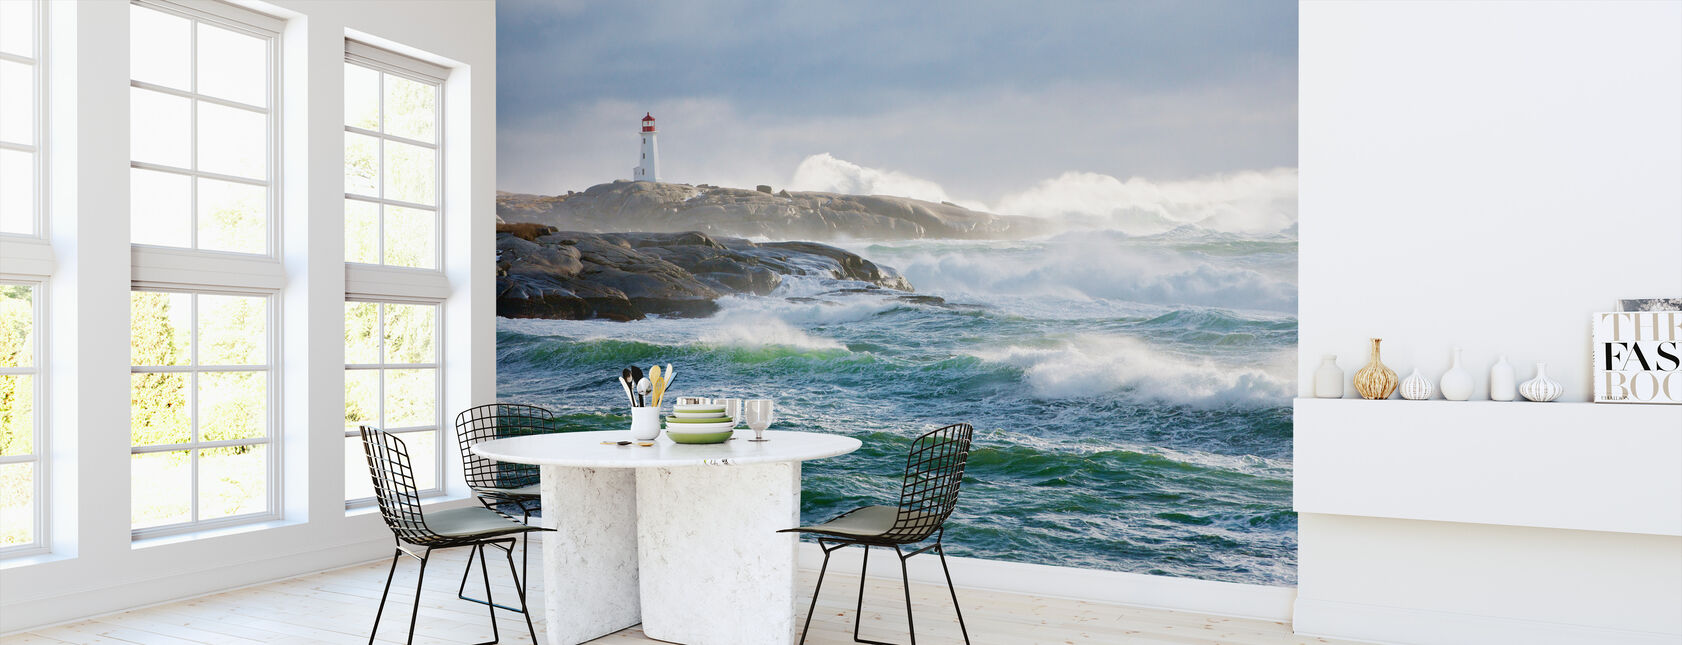 Protection of a Lighthouse - Wallpaper - Kitchen